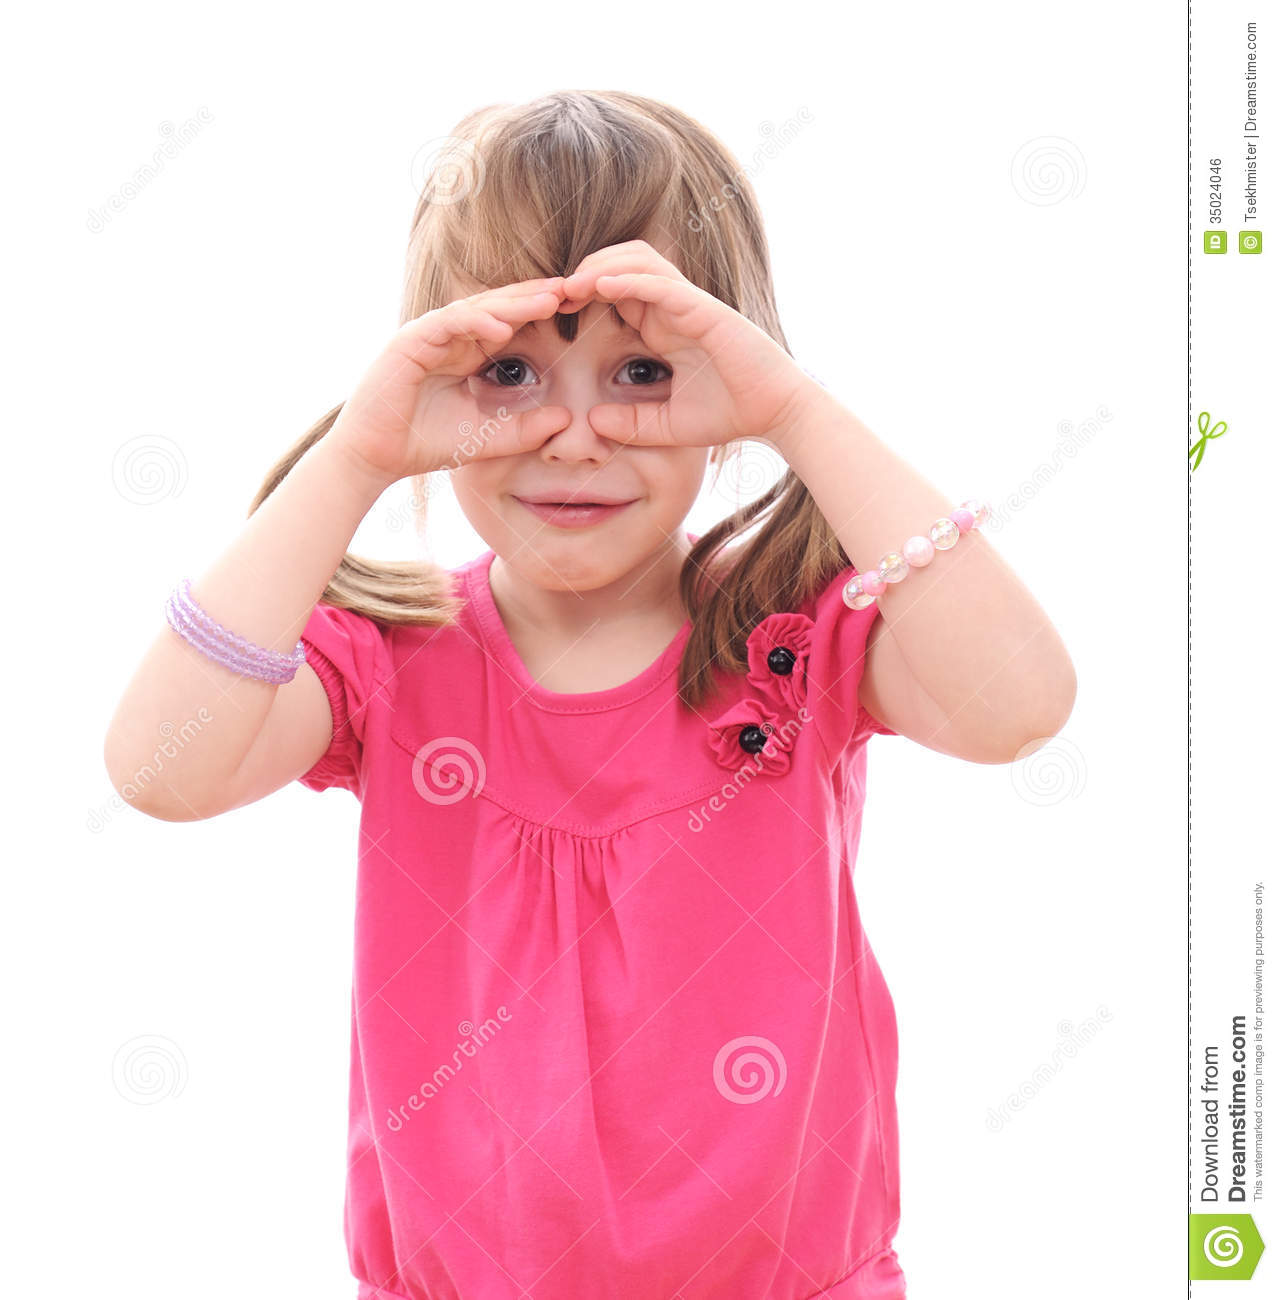 Children Looking Through Imaginary Binoculars Royalty Free Stock Image ...